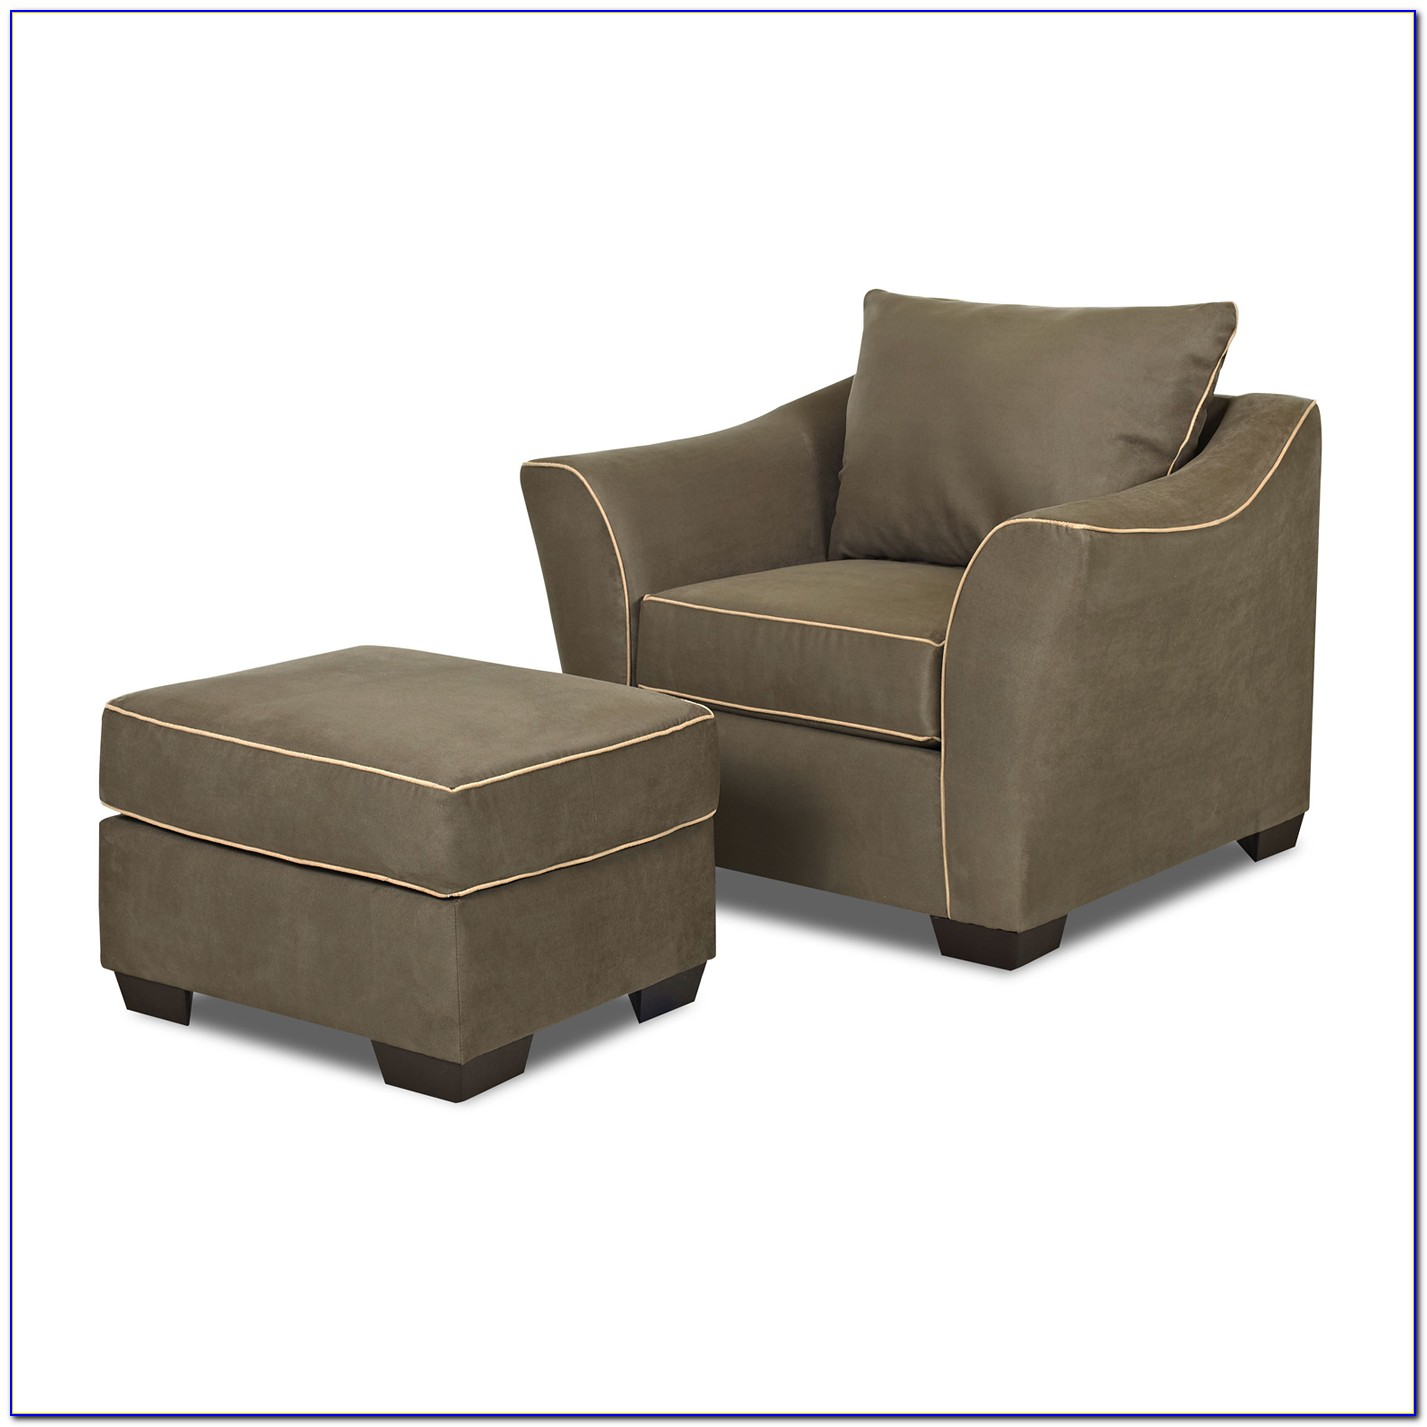 Crestview Accent Chair And Ottoman